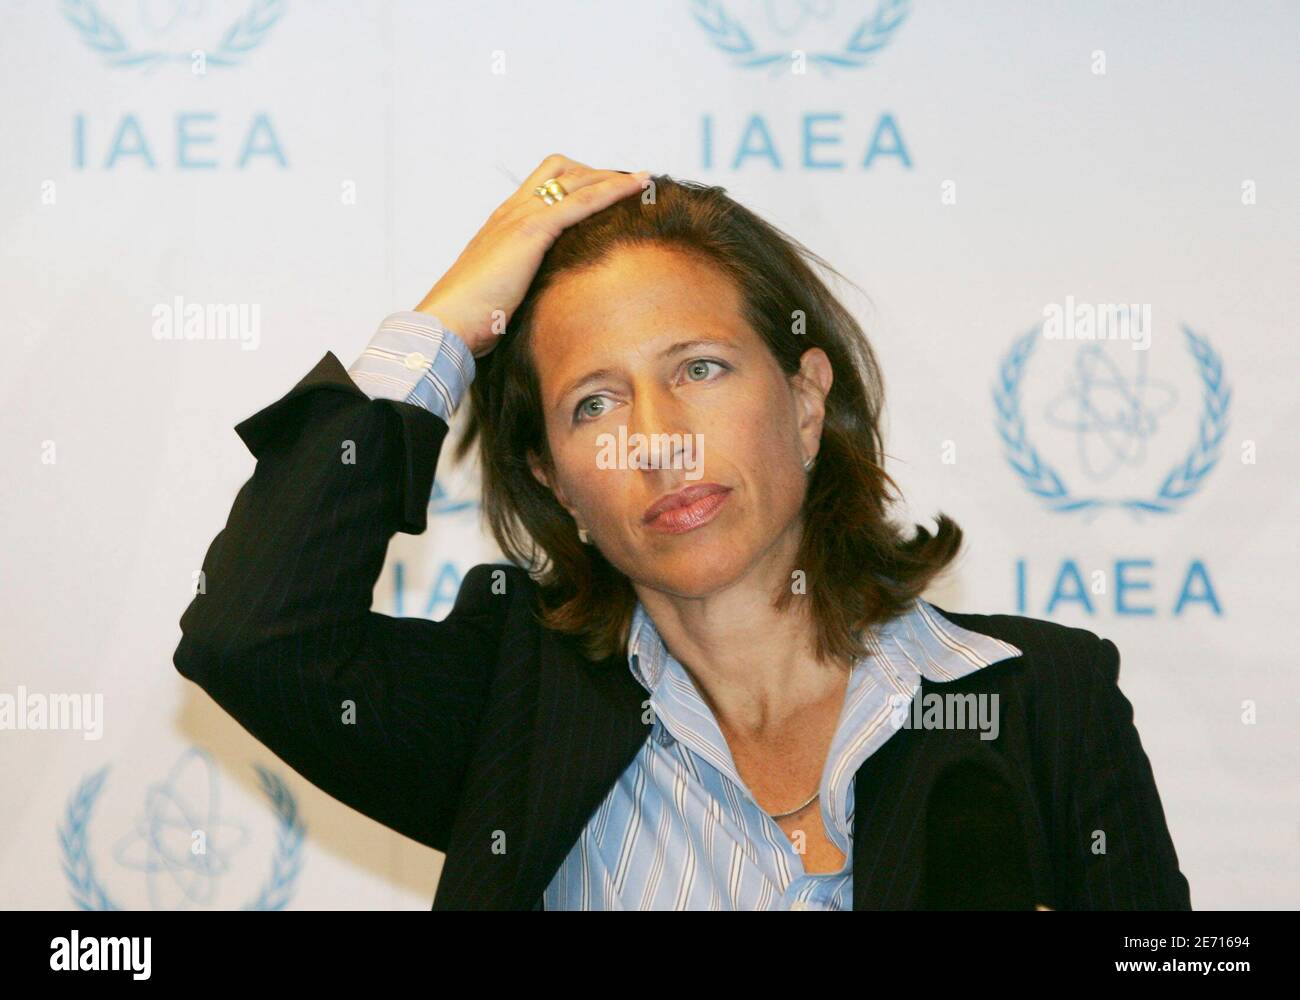 Melissa Fleming, spokeswoman of the International Atomic Energy Agency (IAEA) gestures during a press briefing at IAEA Vienna headquarters August 10, 2005. Iran began breaking U.N. seals at a uranium processing plant on Wednesday, U.N. and Iranian officials said, a step on the road to production of enriched uranium that could be used for nuclear weapons. REUTERS/Leonhard Foeger  LF/CVI Stock Photo